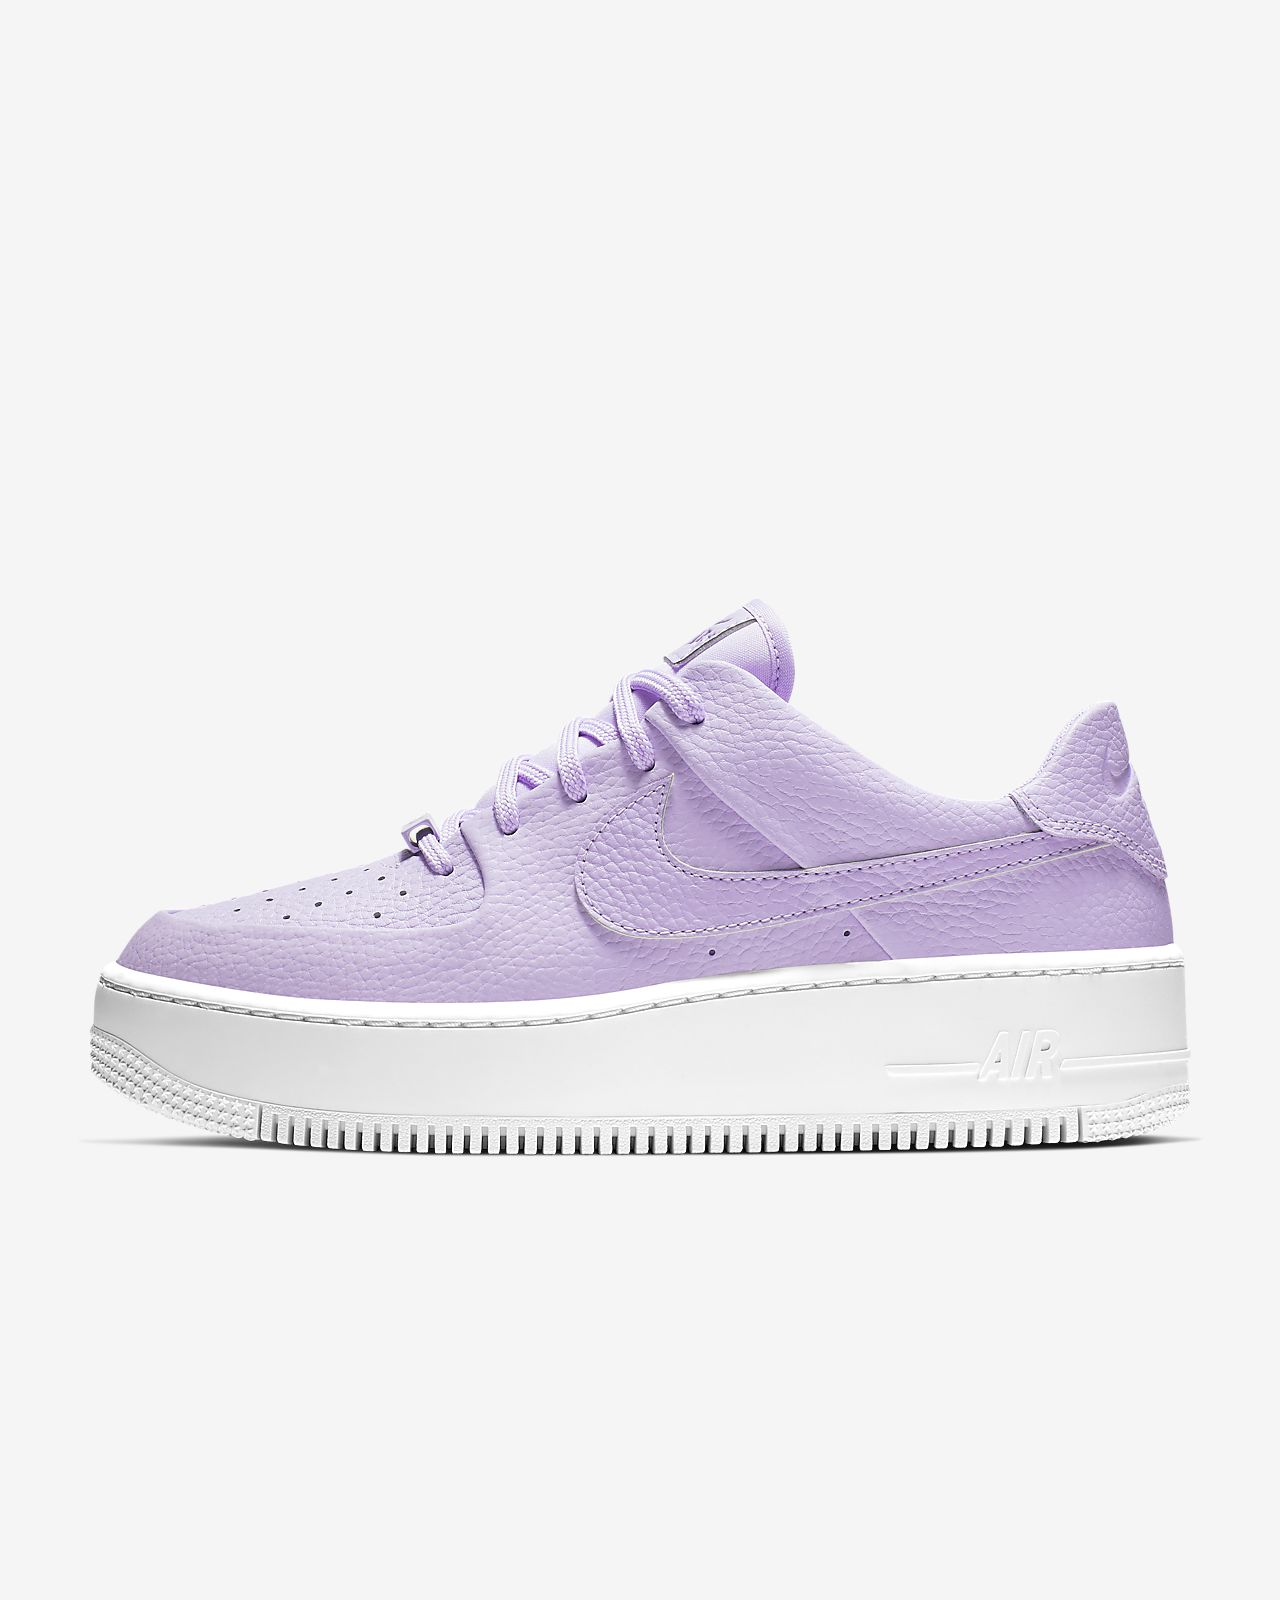 9a75b6332d Nike Air Force 1 Sage Low Women's Shoe. Nike.com NL